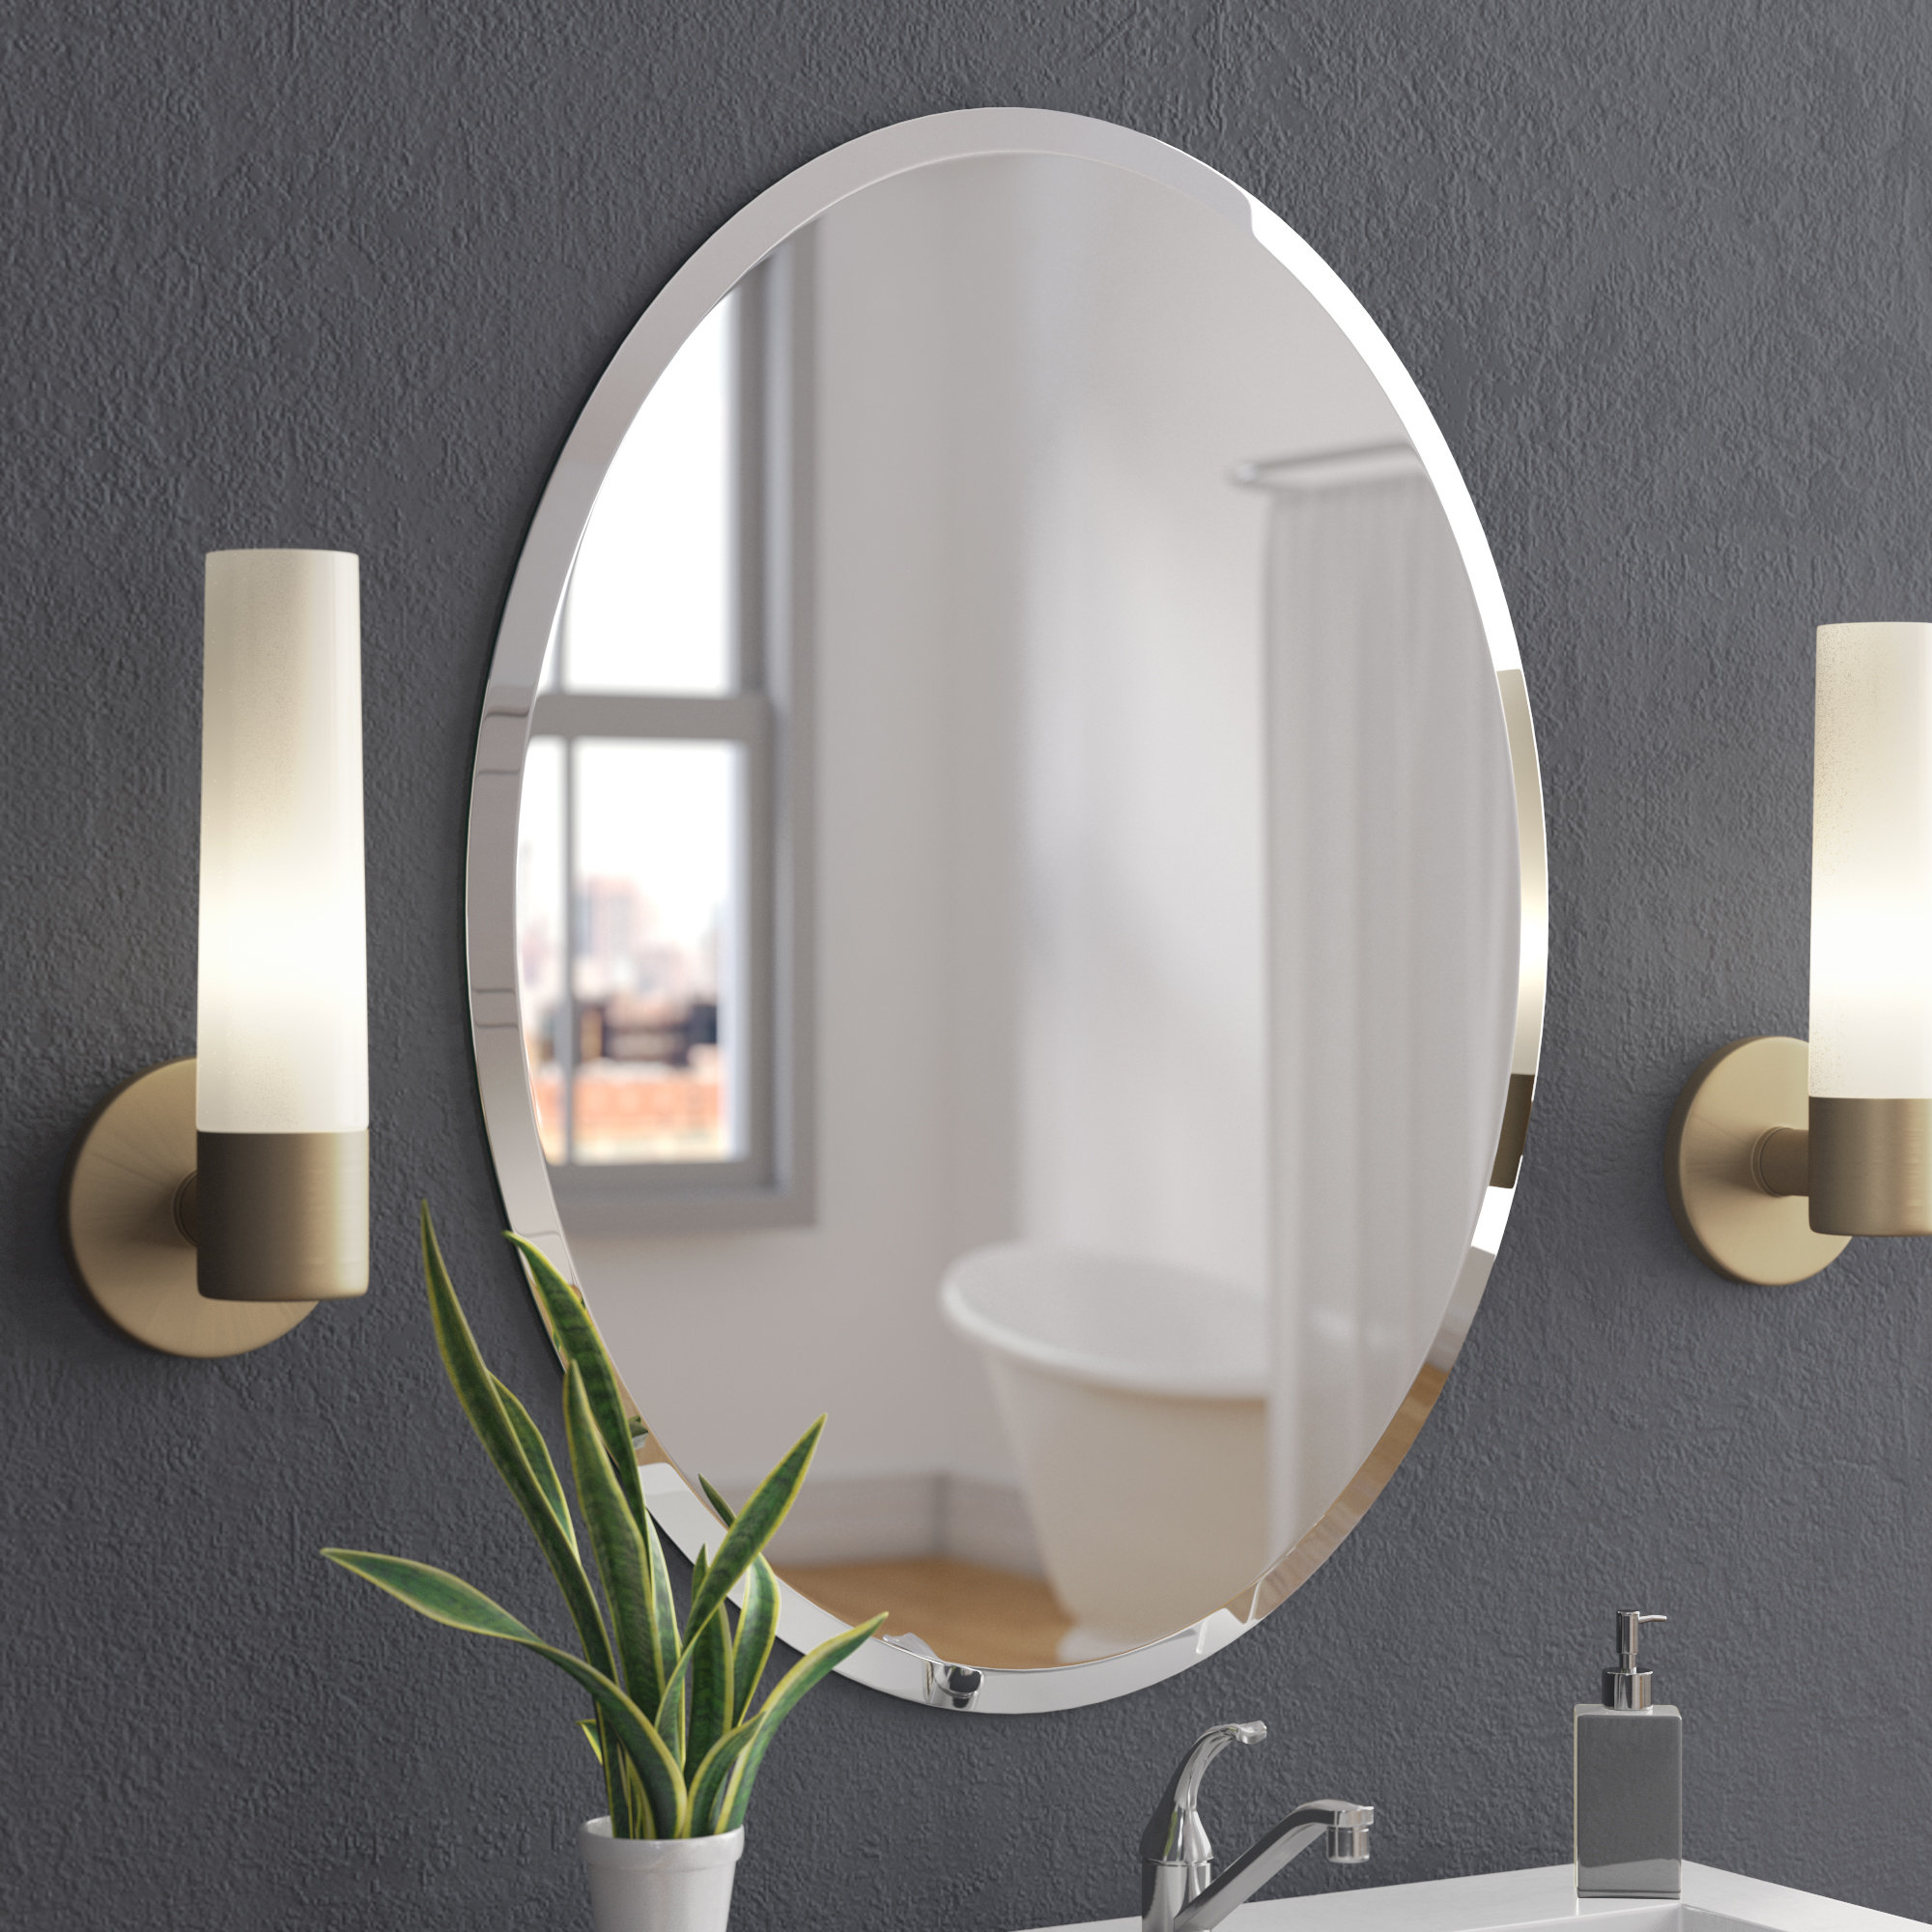 Beveled Bathroom Mirror – 10.fcpgo.streuobsttraum (Image 3 of 20)